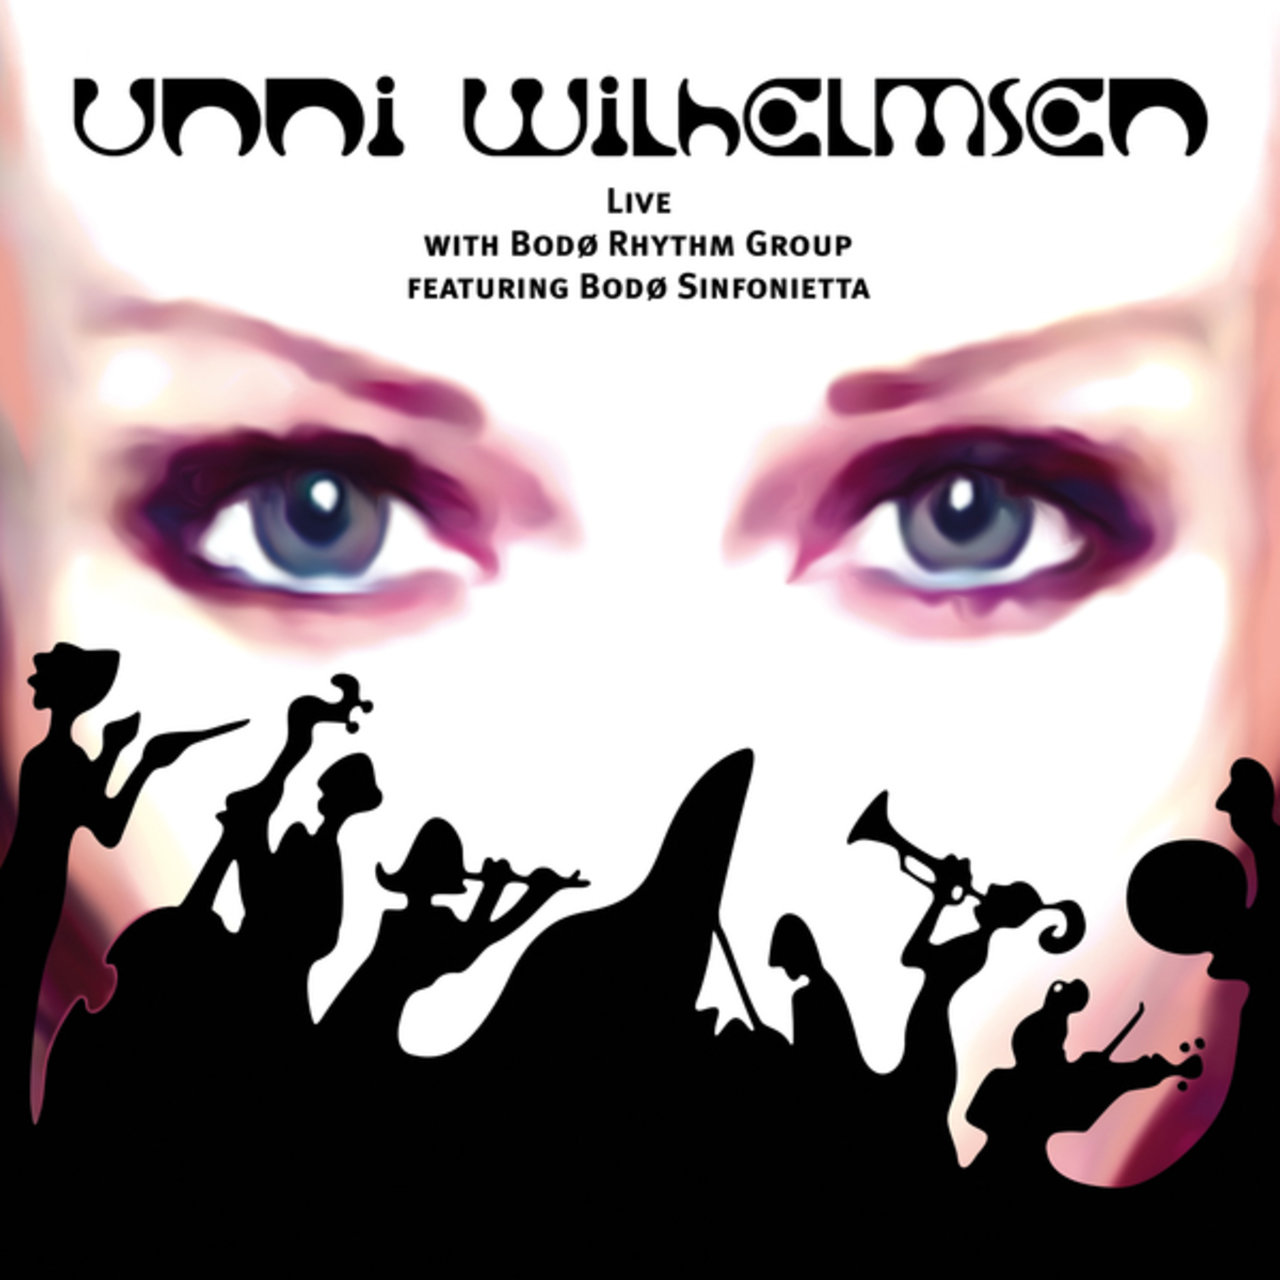 Unni Wilhelmsen Live With Bodo Rhythm Group